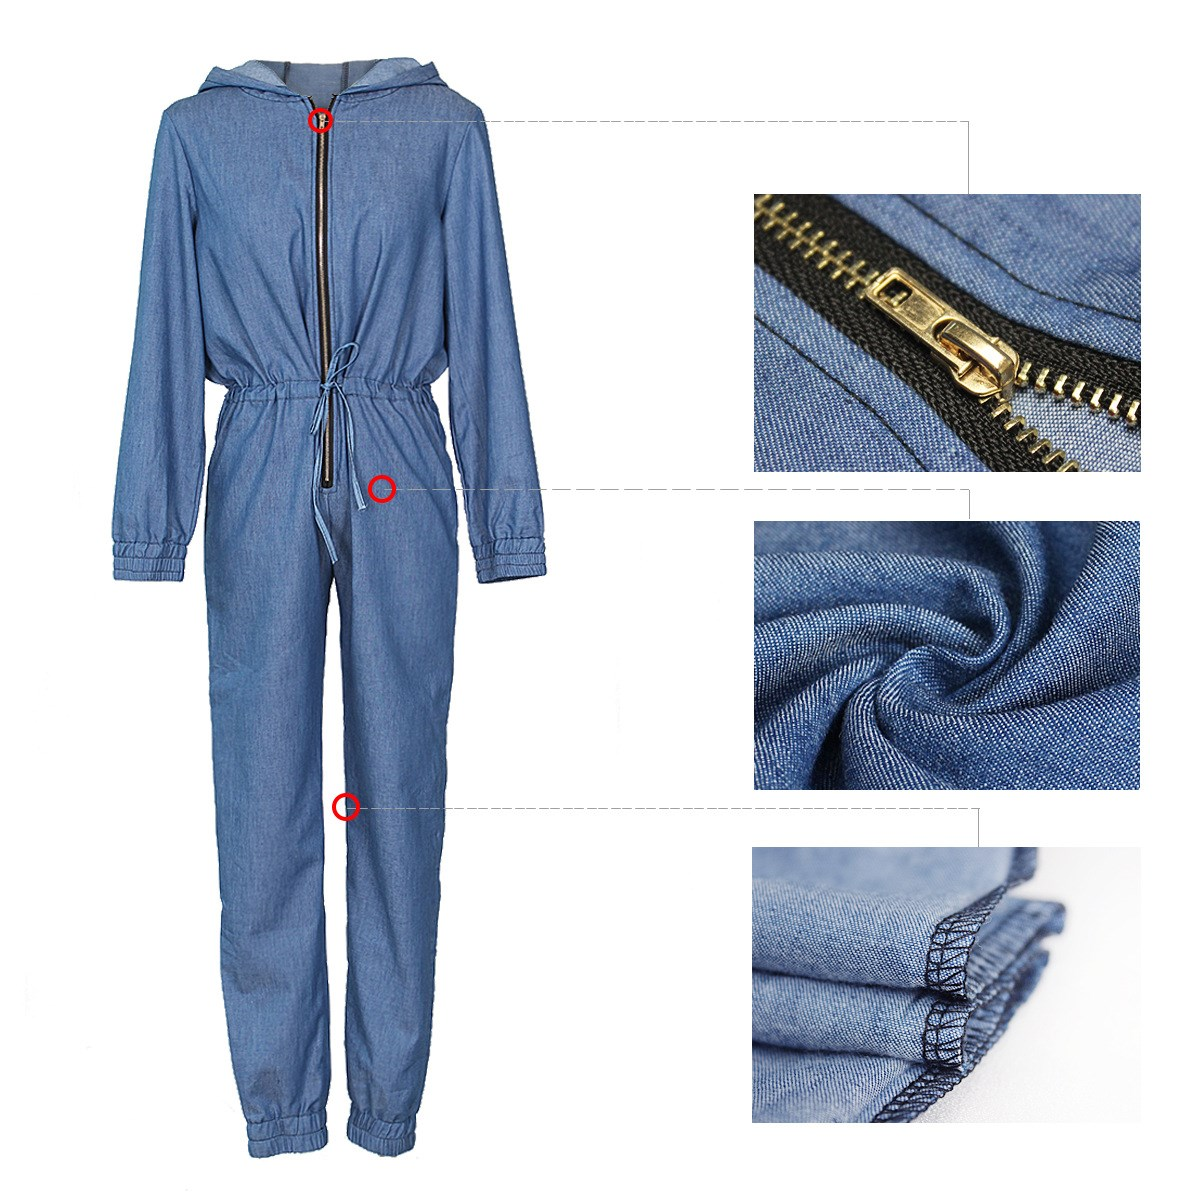 Women Jeans Jumpsuit Long Sleeve Casual Denim Rompers Lace Up Zipper Drawstring Hooded Denim Jumpsuits Overalls